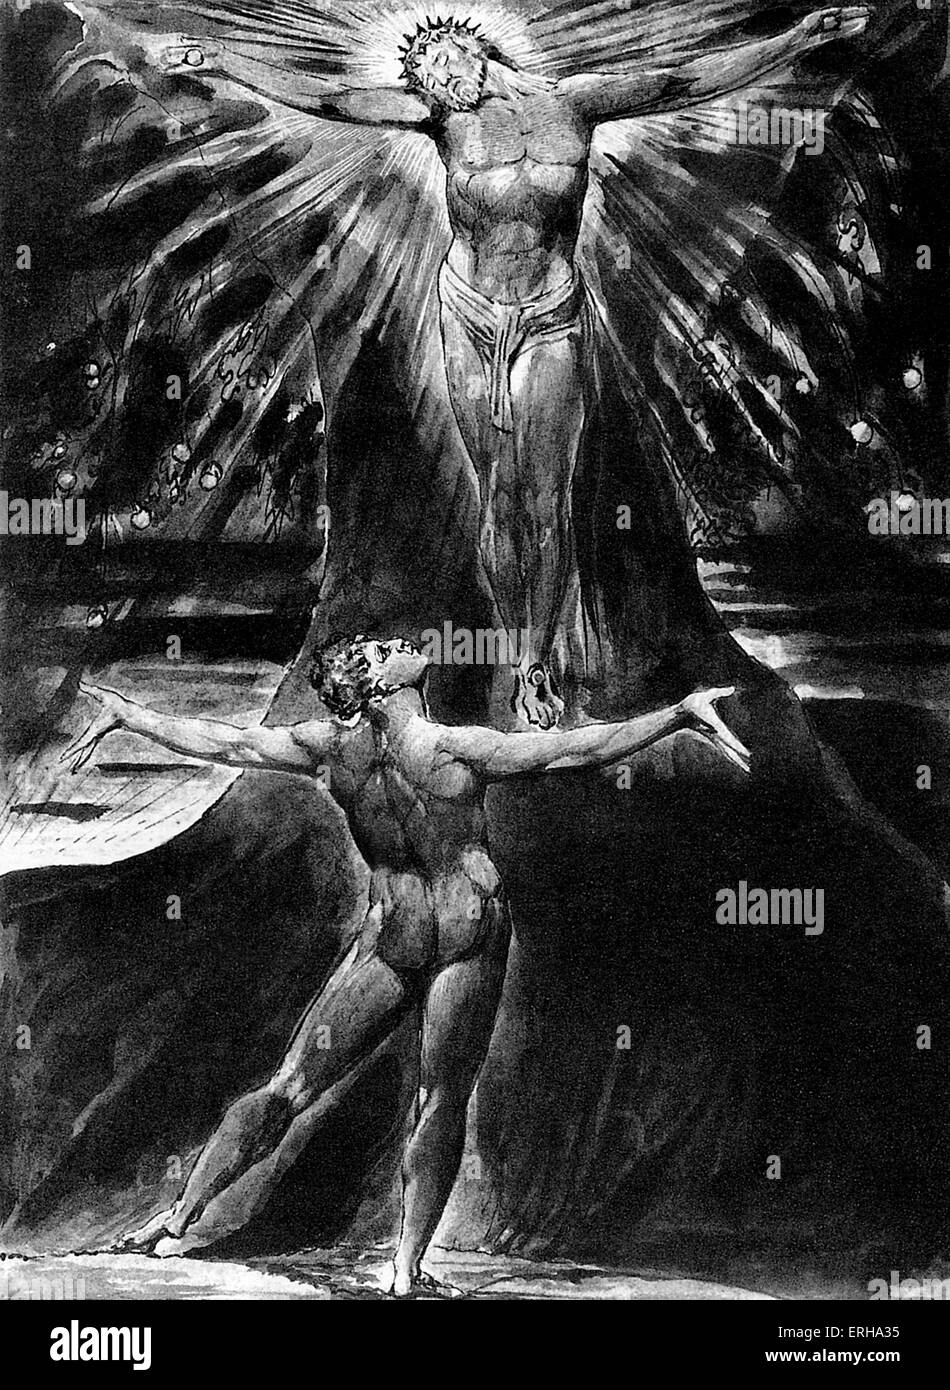 Albion Contemplating Jesus Crucified, page 76 of the poem 'Jerusalem' by William Blake, 1804-1820. English - Stock Image